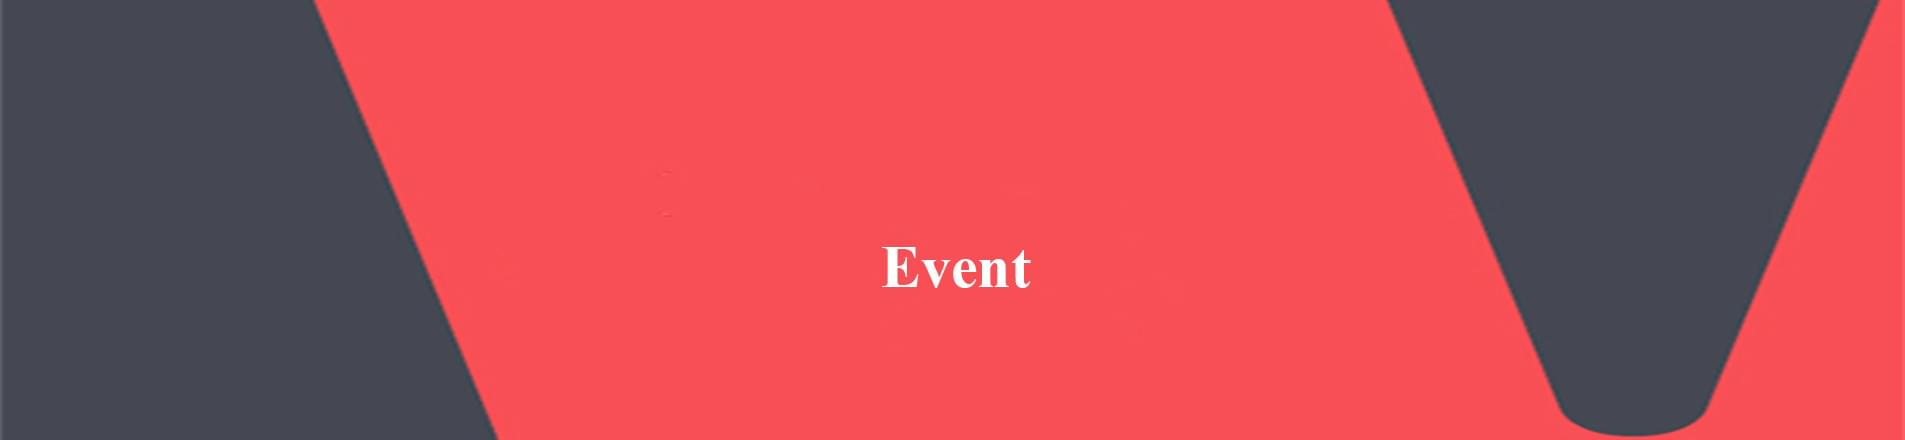 Word event on the red VERCIDA branded background